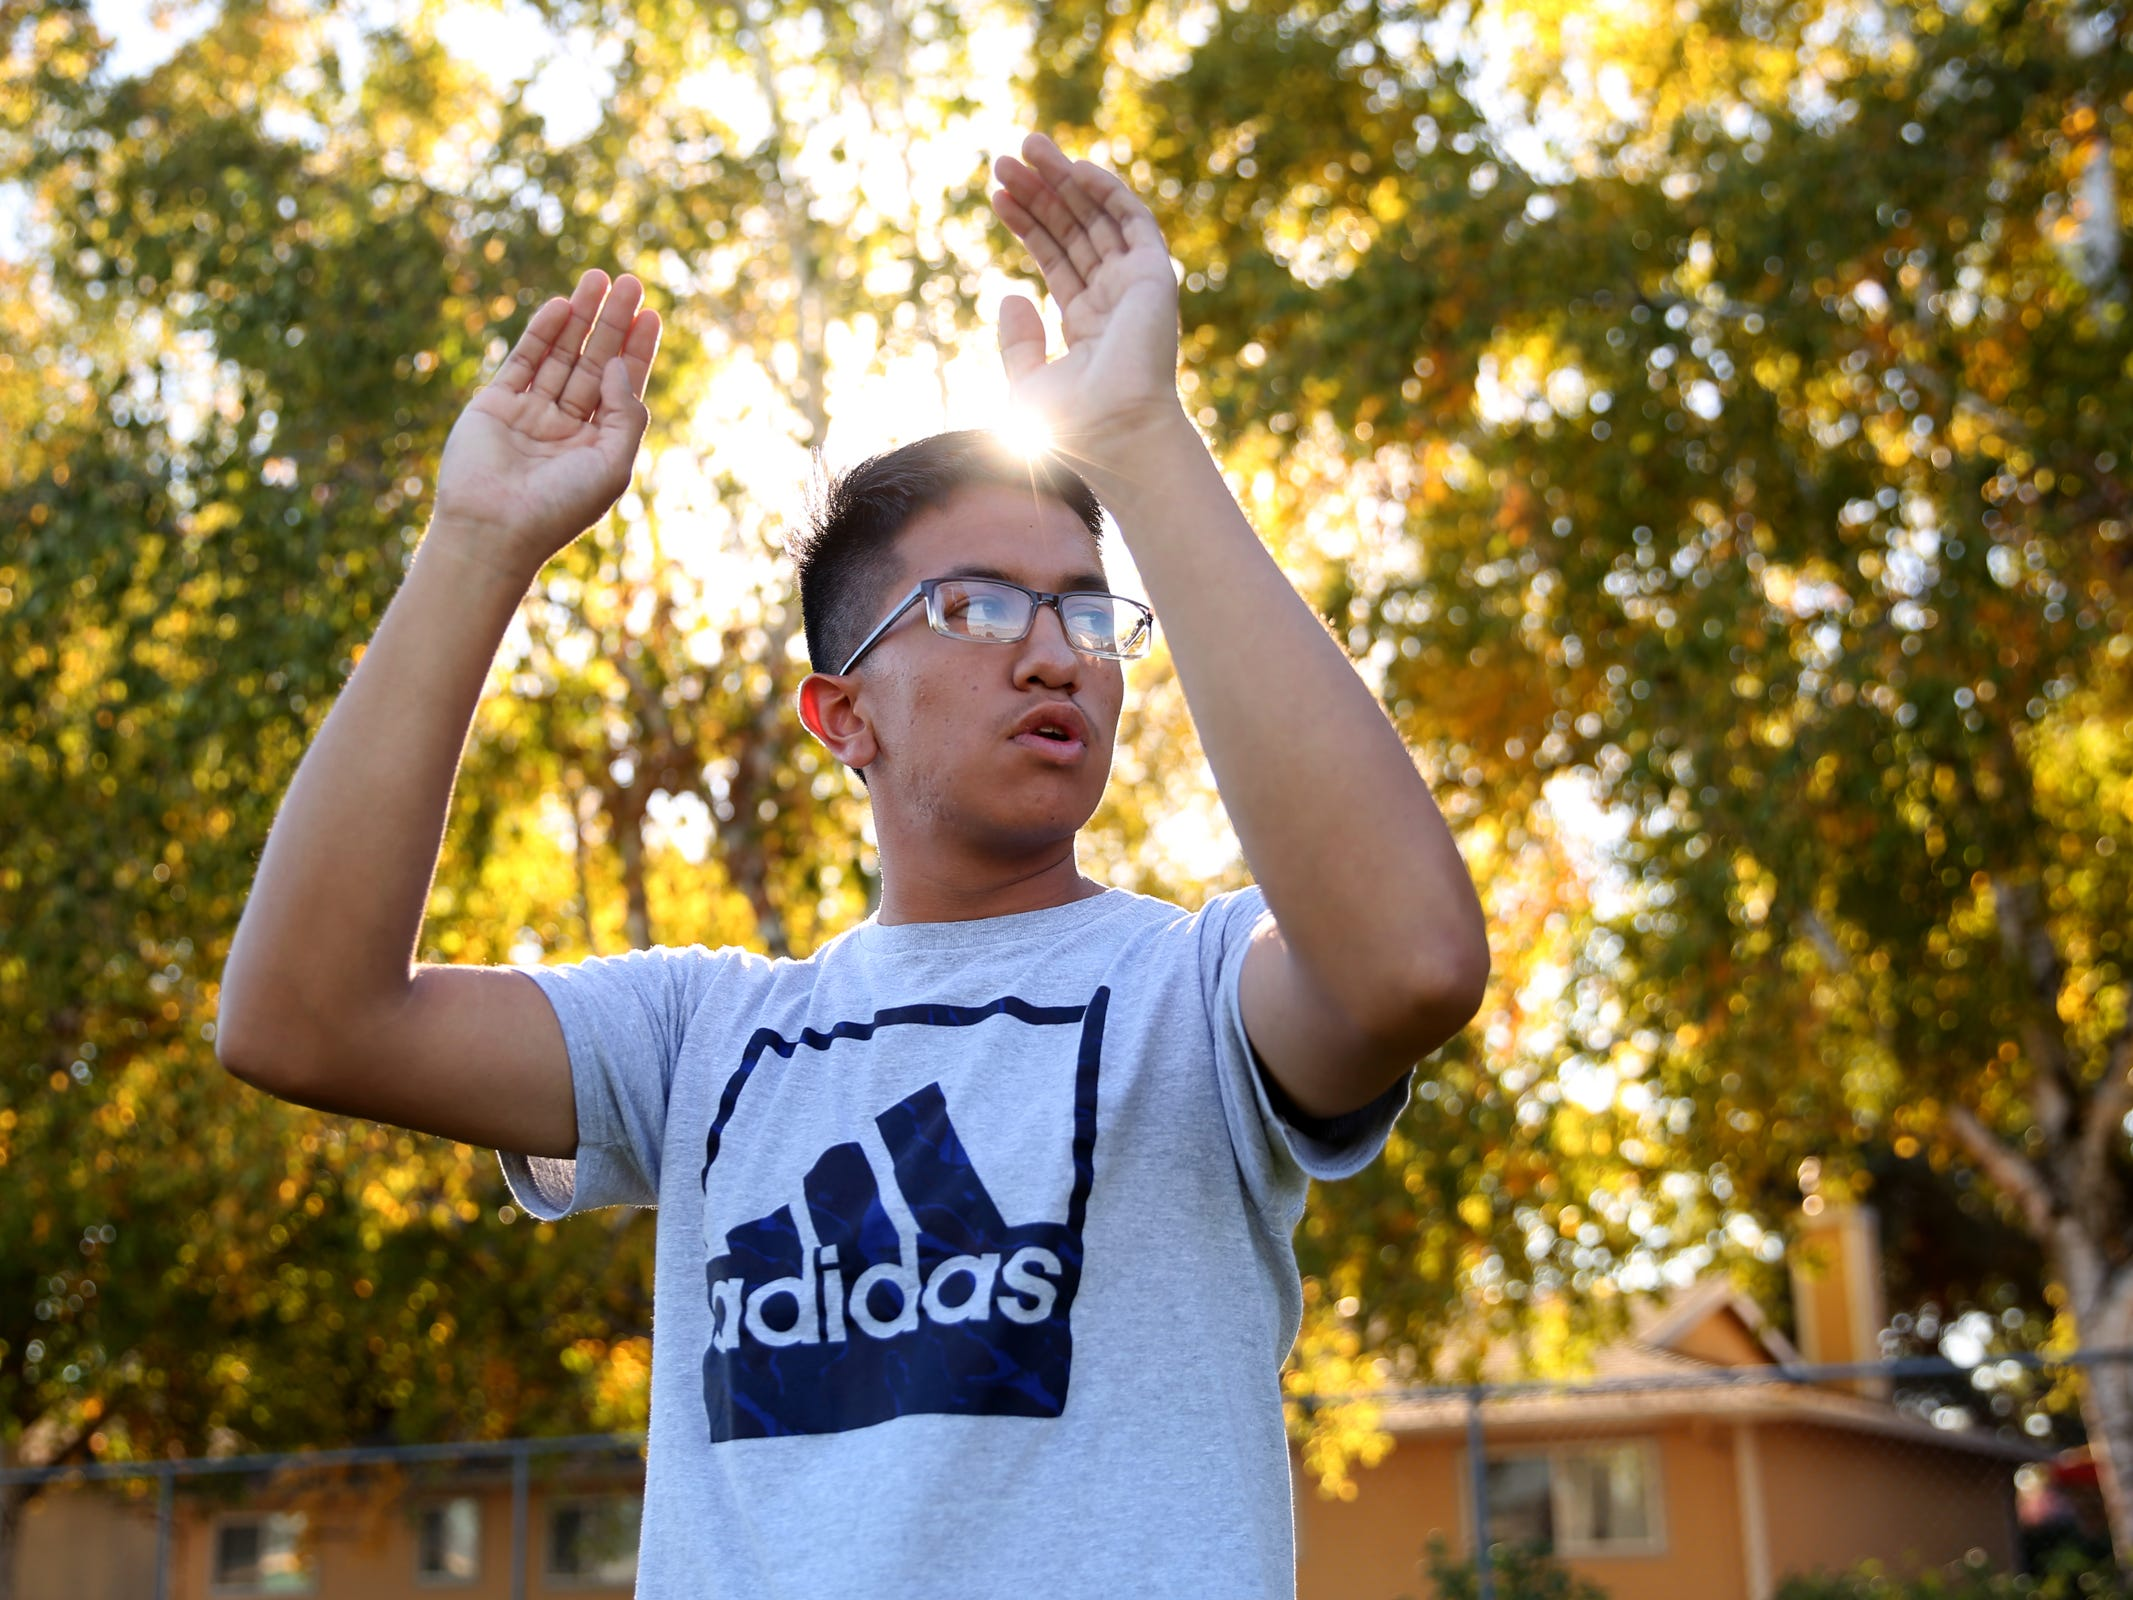 Alex Lazaro Ortiz, a senior drum major, conducts during a McKay marching band rehearsal at McKay High School in Salem on Thursday, Sep. 27, 2018.